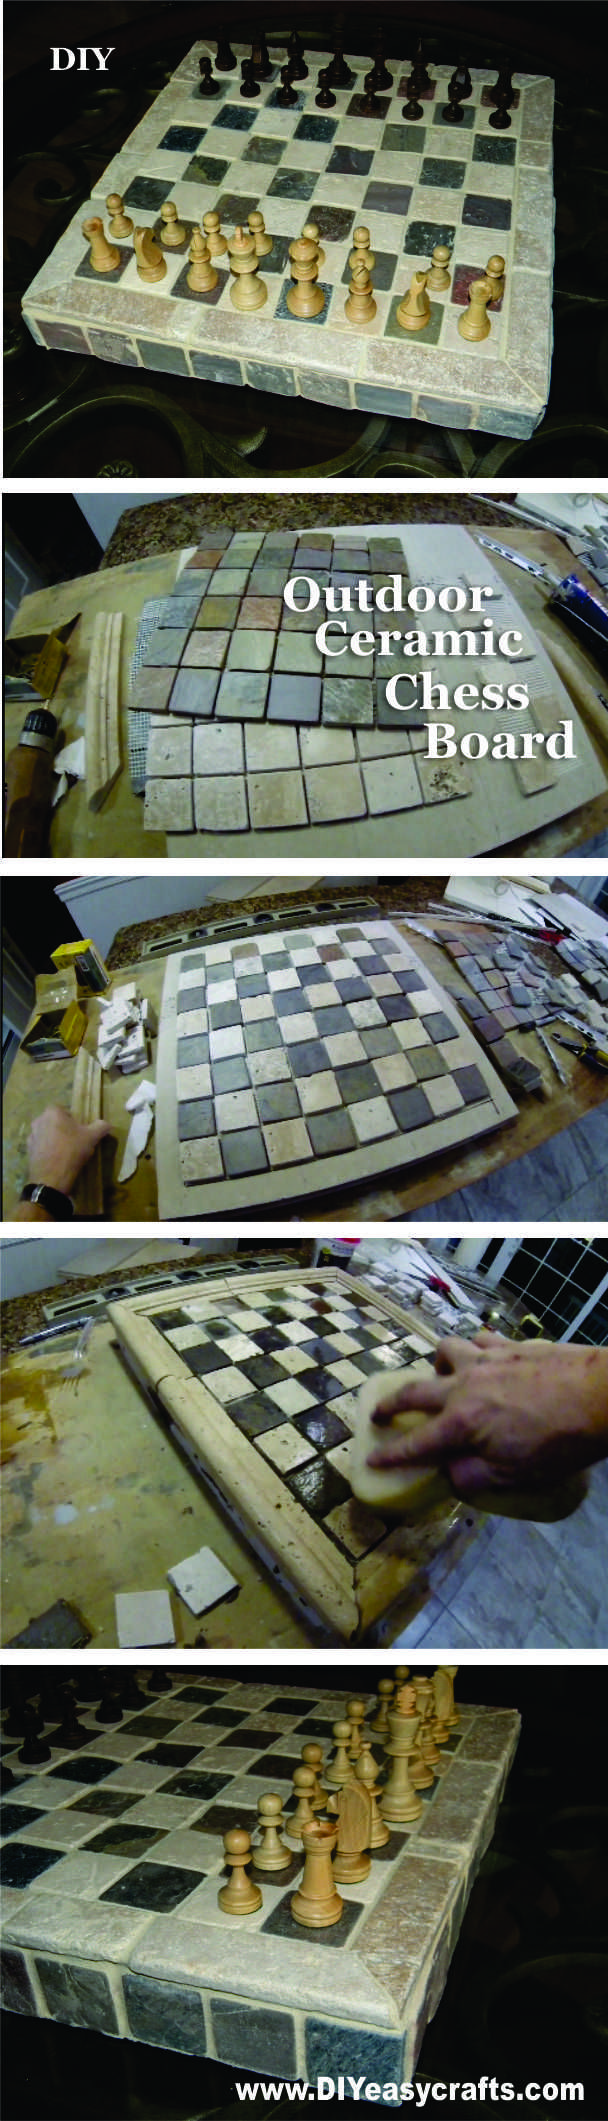 Best 25 ceramic tile crafts ideas on pinterest tile projects diy ceramic tile outdoor chess board diyeasycrafts more doublecrazyfo Image collections